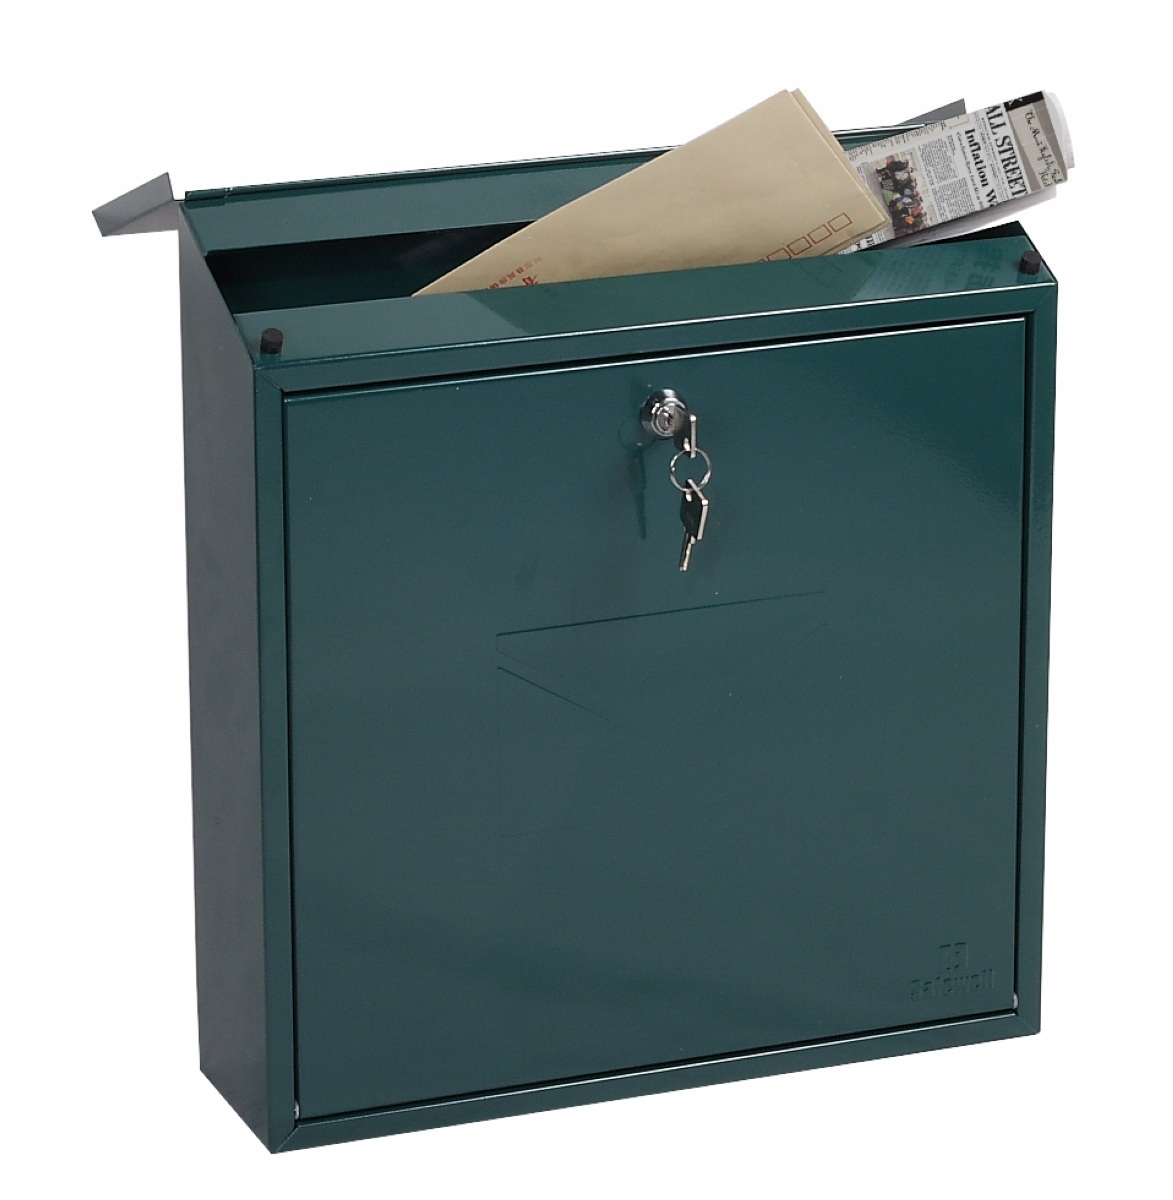 MB Series Top-Loading Mail Boxes